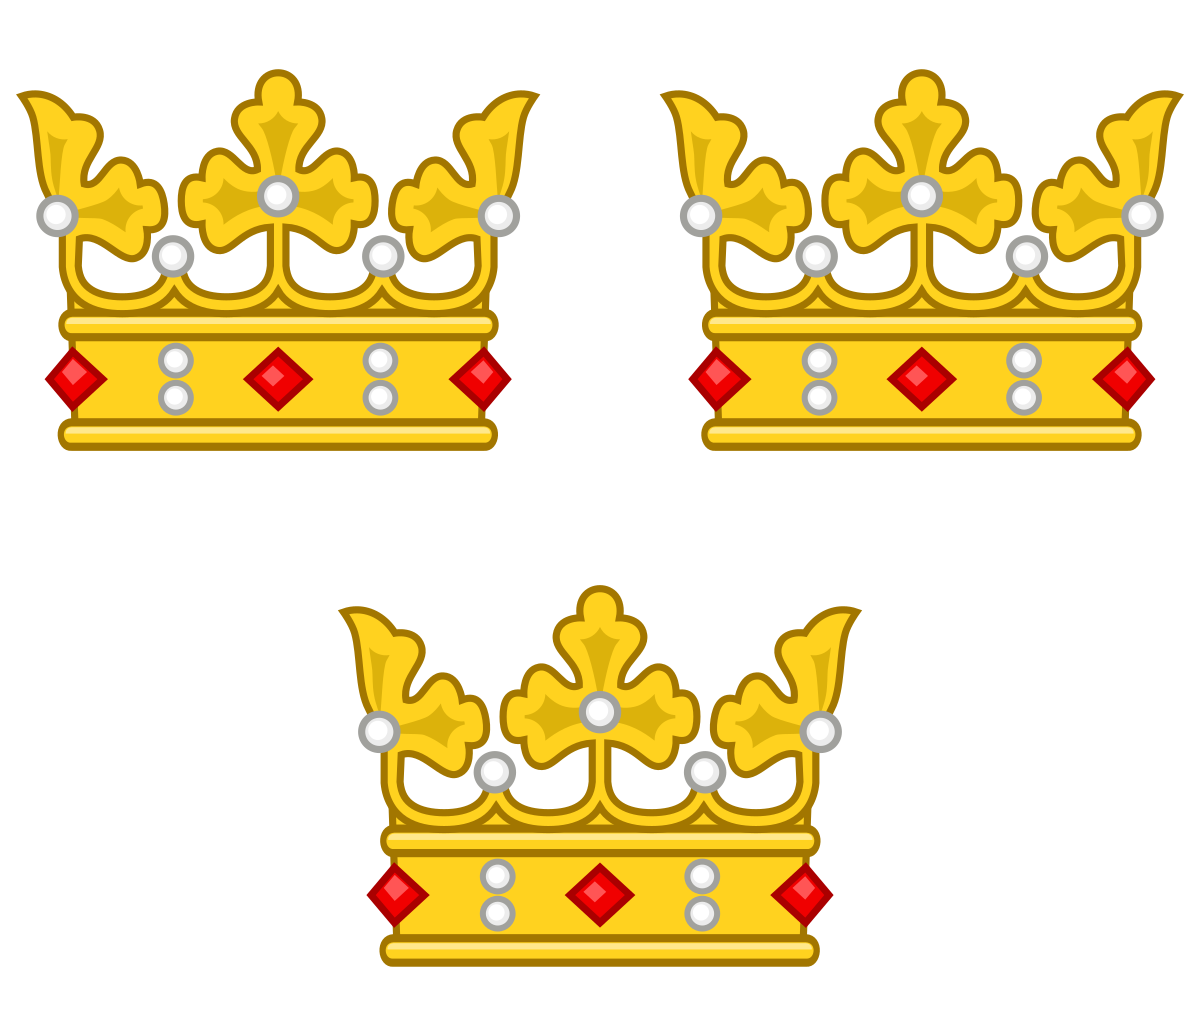 Three Crowns.